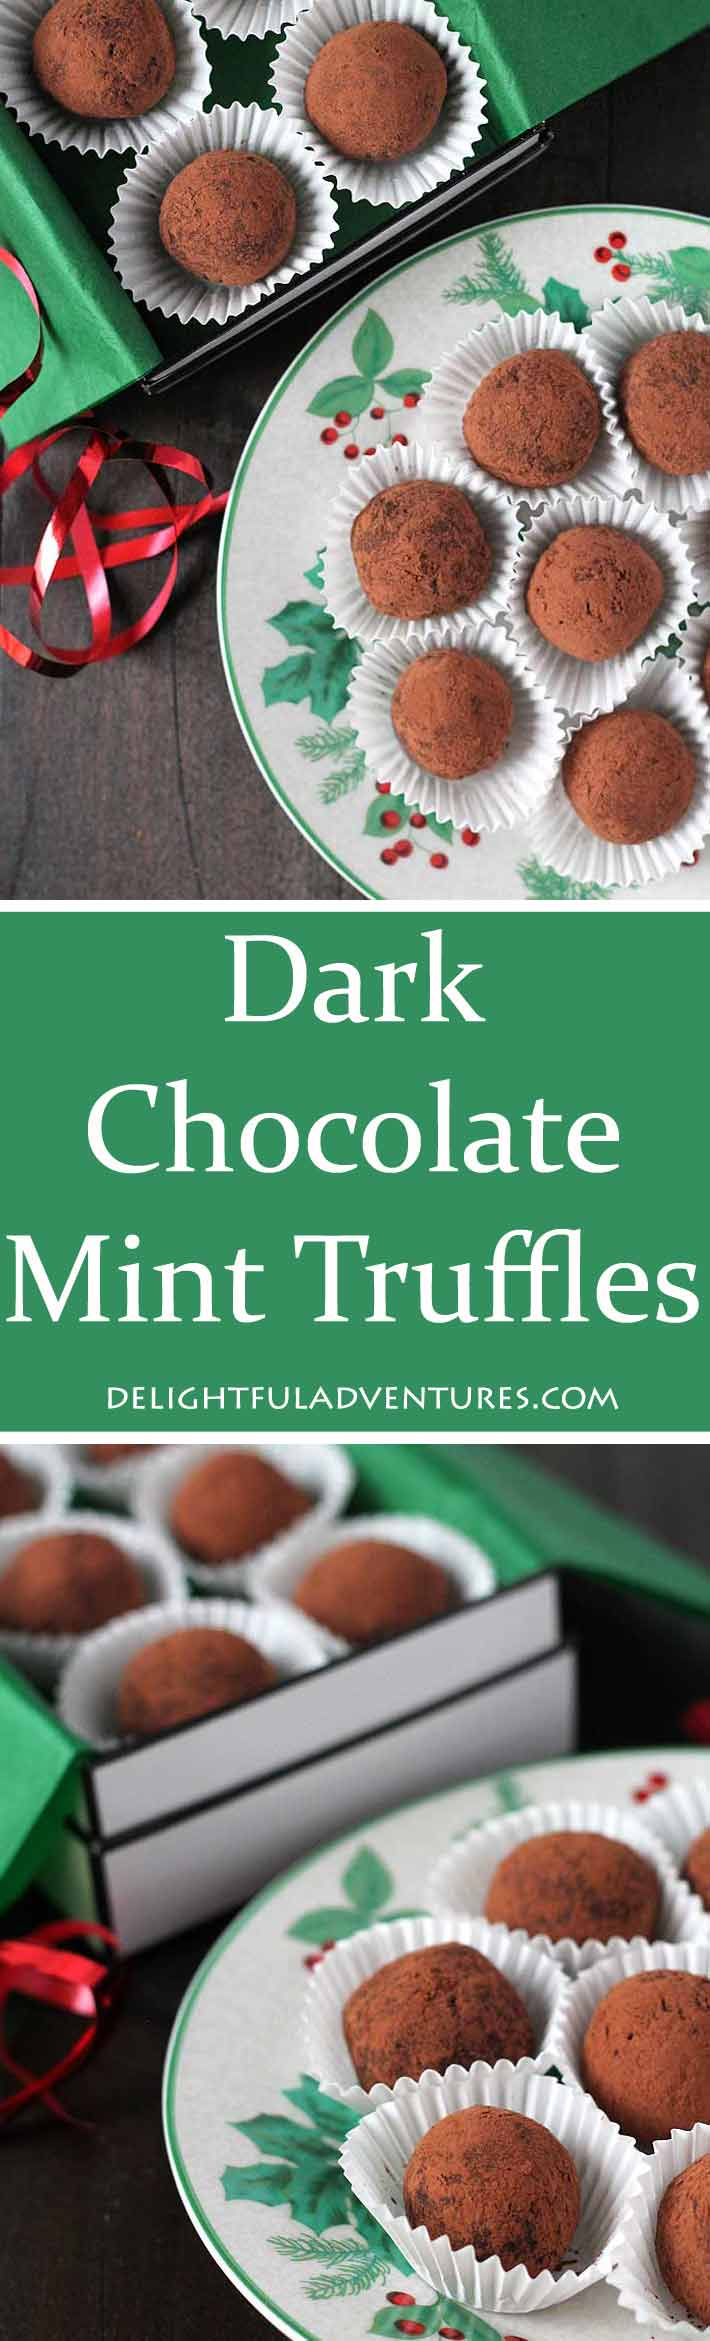 Melt in your mouth, easy to make, four-ingredient vegan Dark Chocolate Mint Truffles that are perfect for homemade holiday gift-giving or for entertaining. #chocolatemint #vegantruffles #chocolateminttruffles #chocolatetruffles